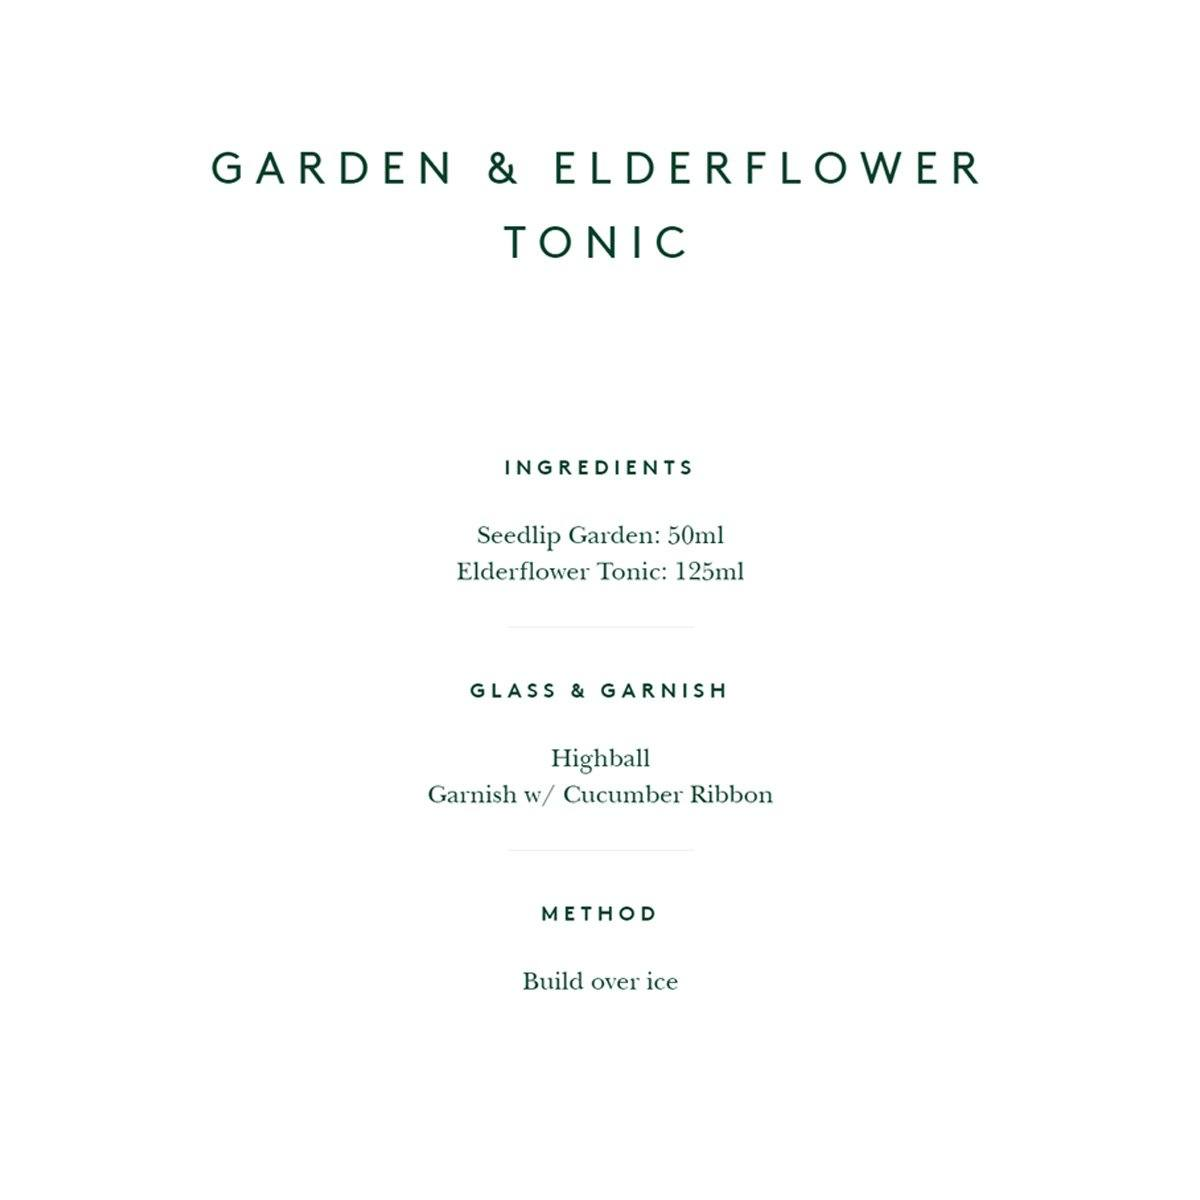 SEEDLIP GARDEN 108 & ELDERFLOWER TONIC